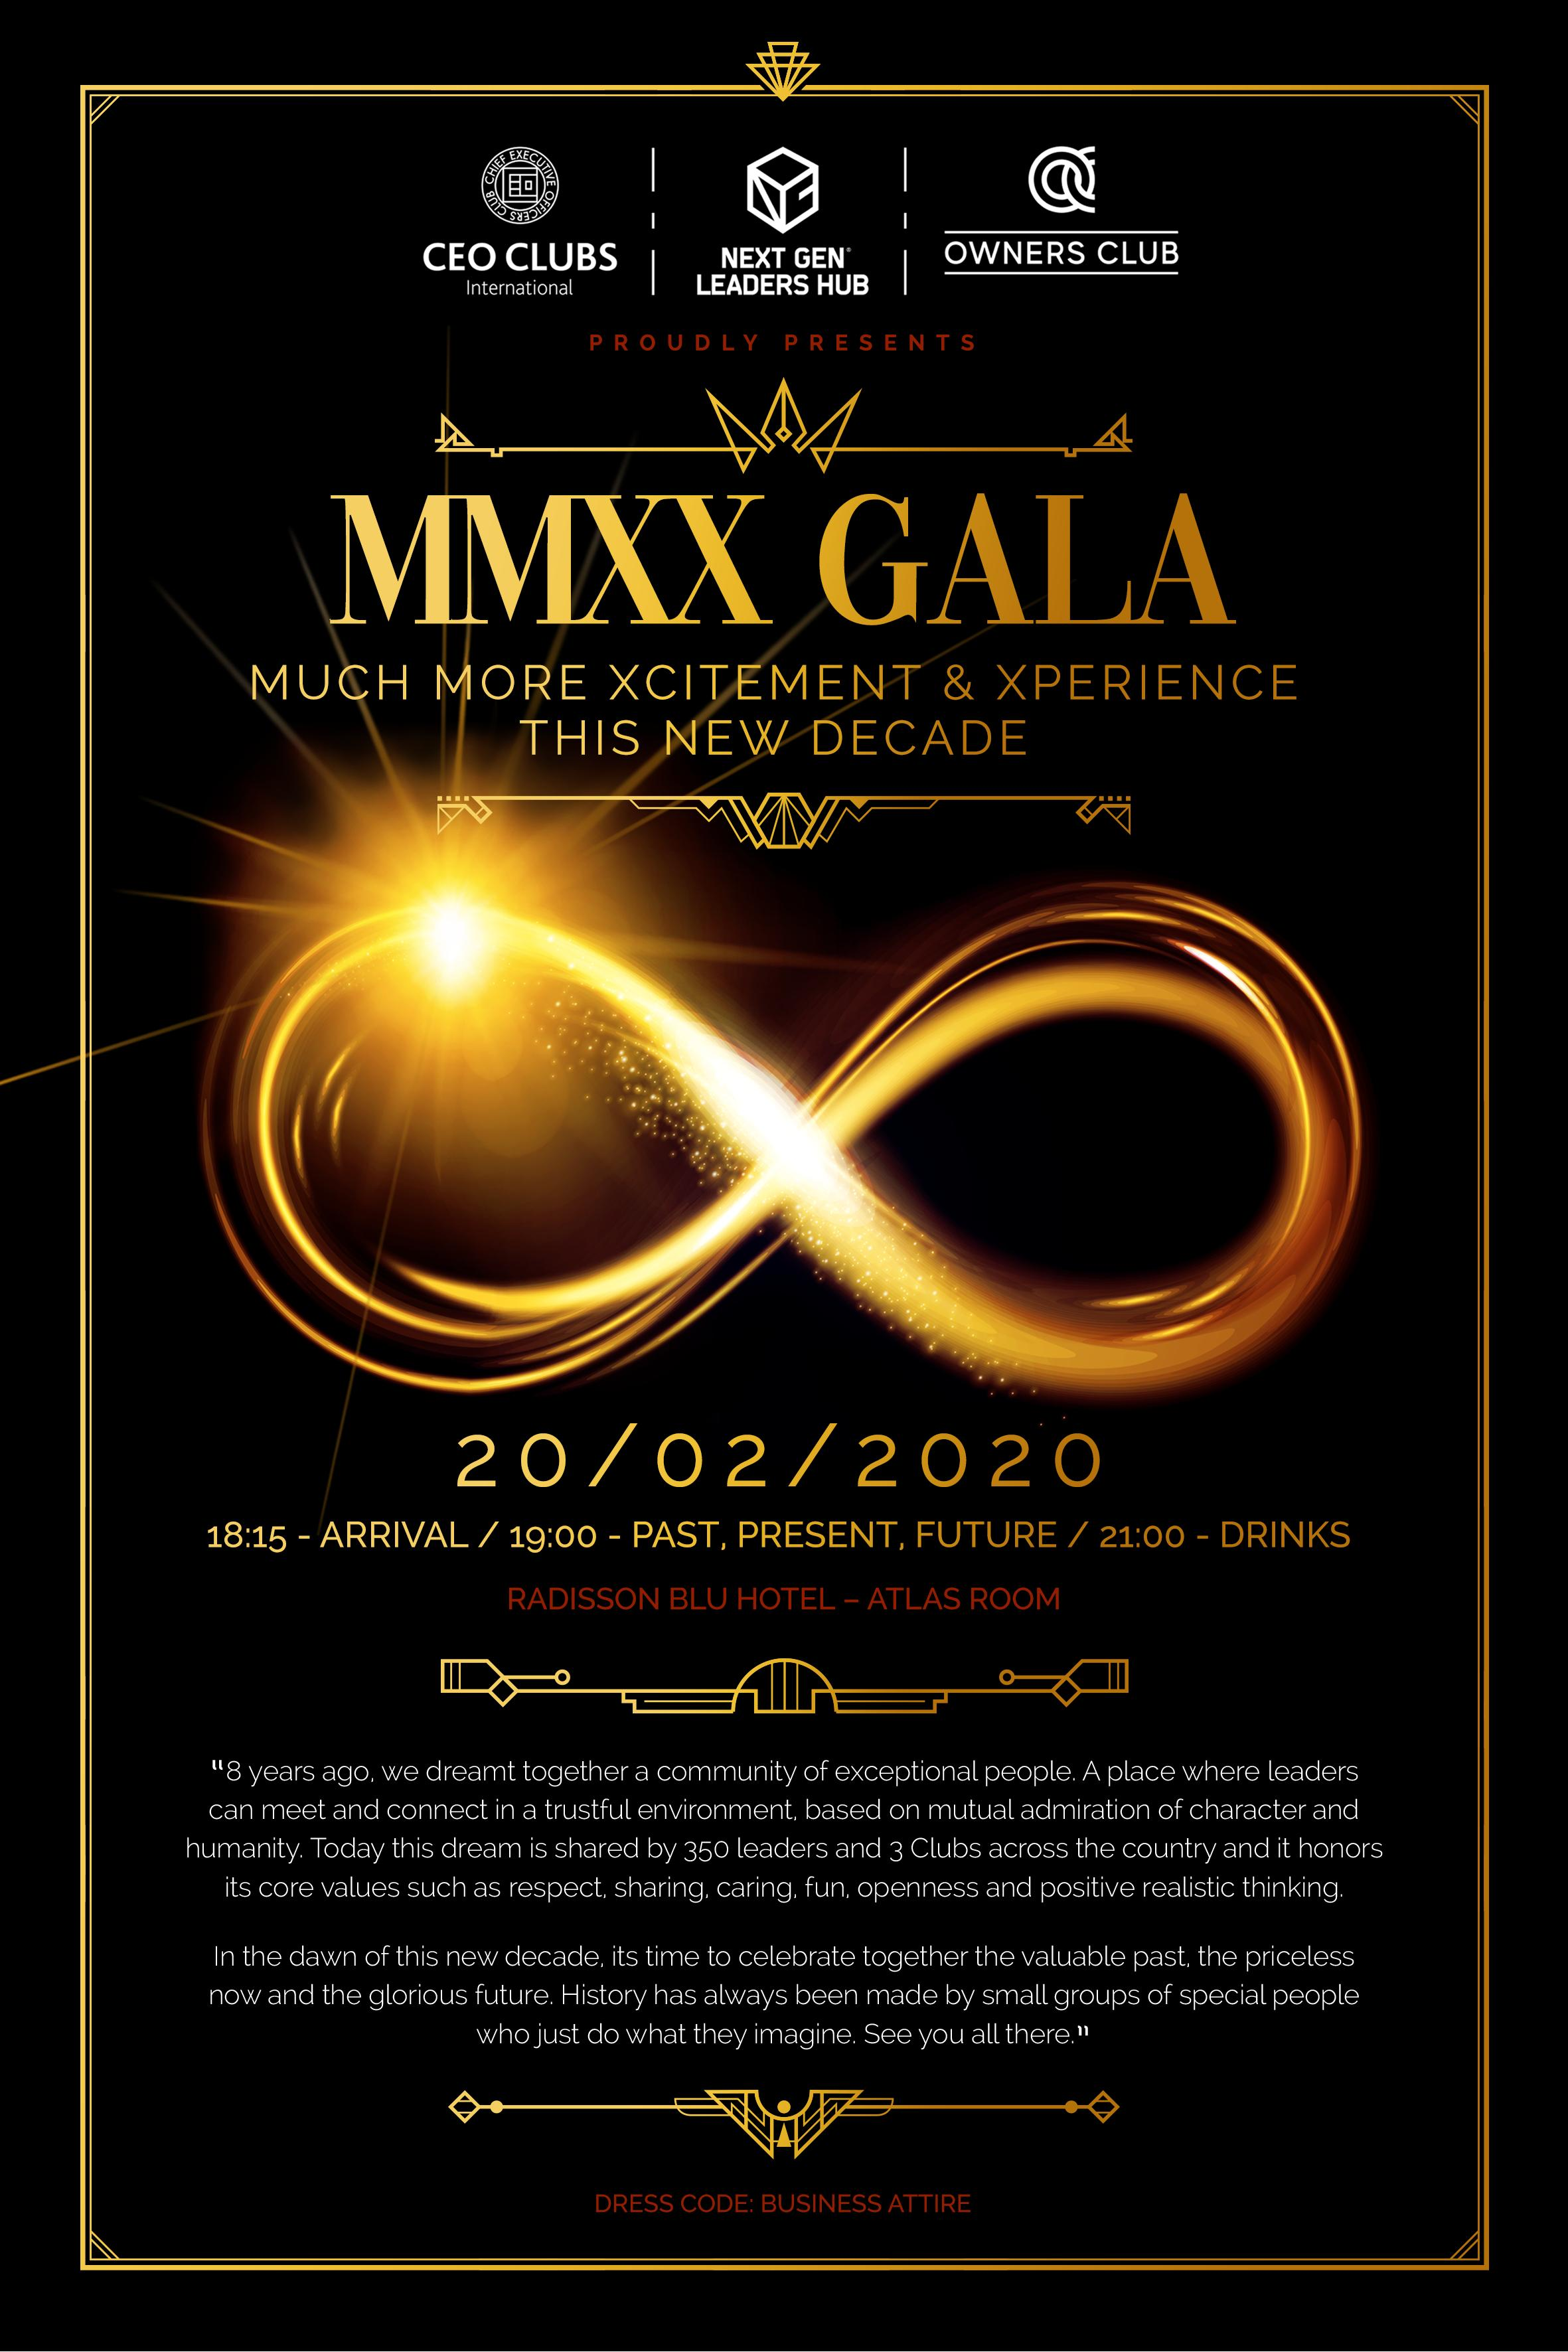 MMXX GALA: The Celebration of the Past, Present & Future